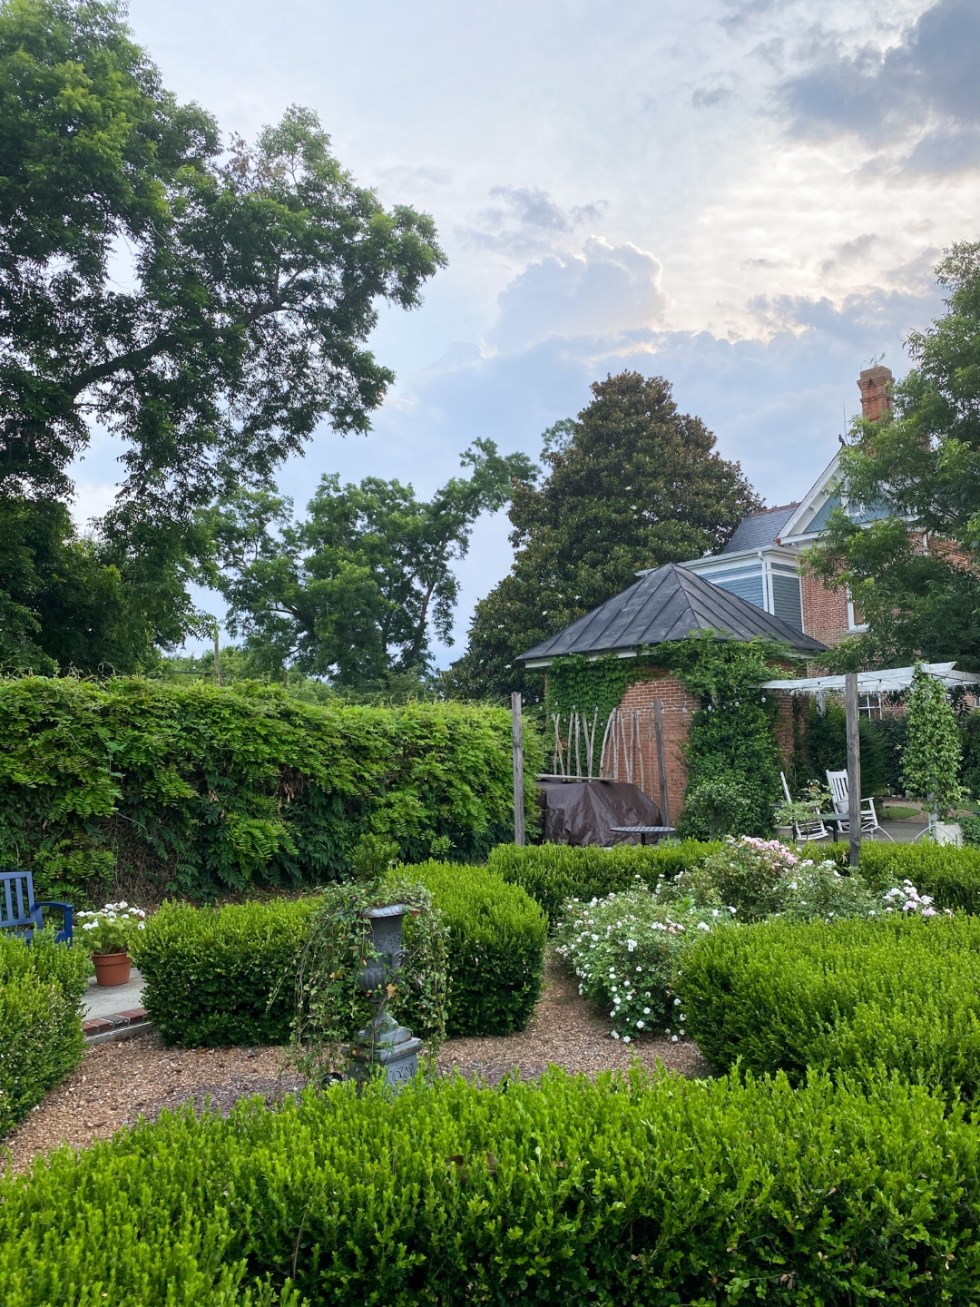 Top 10 Best Things to Do in Edenton, NC: A Complete Travel Guide - I'm Fixin' To - @imfixintoblog | Edenton Travel Guide by popular NC travel guid, I'm Fixin' To: image of an English garden.